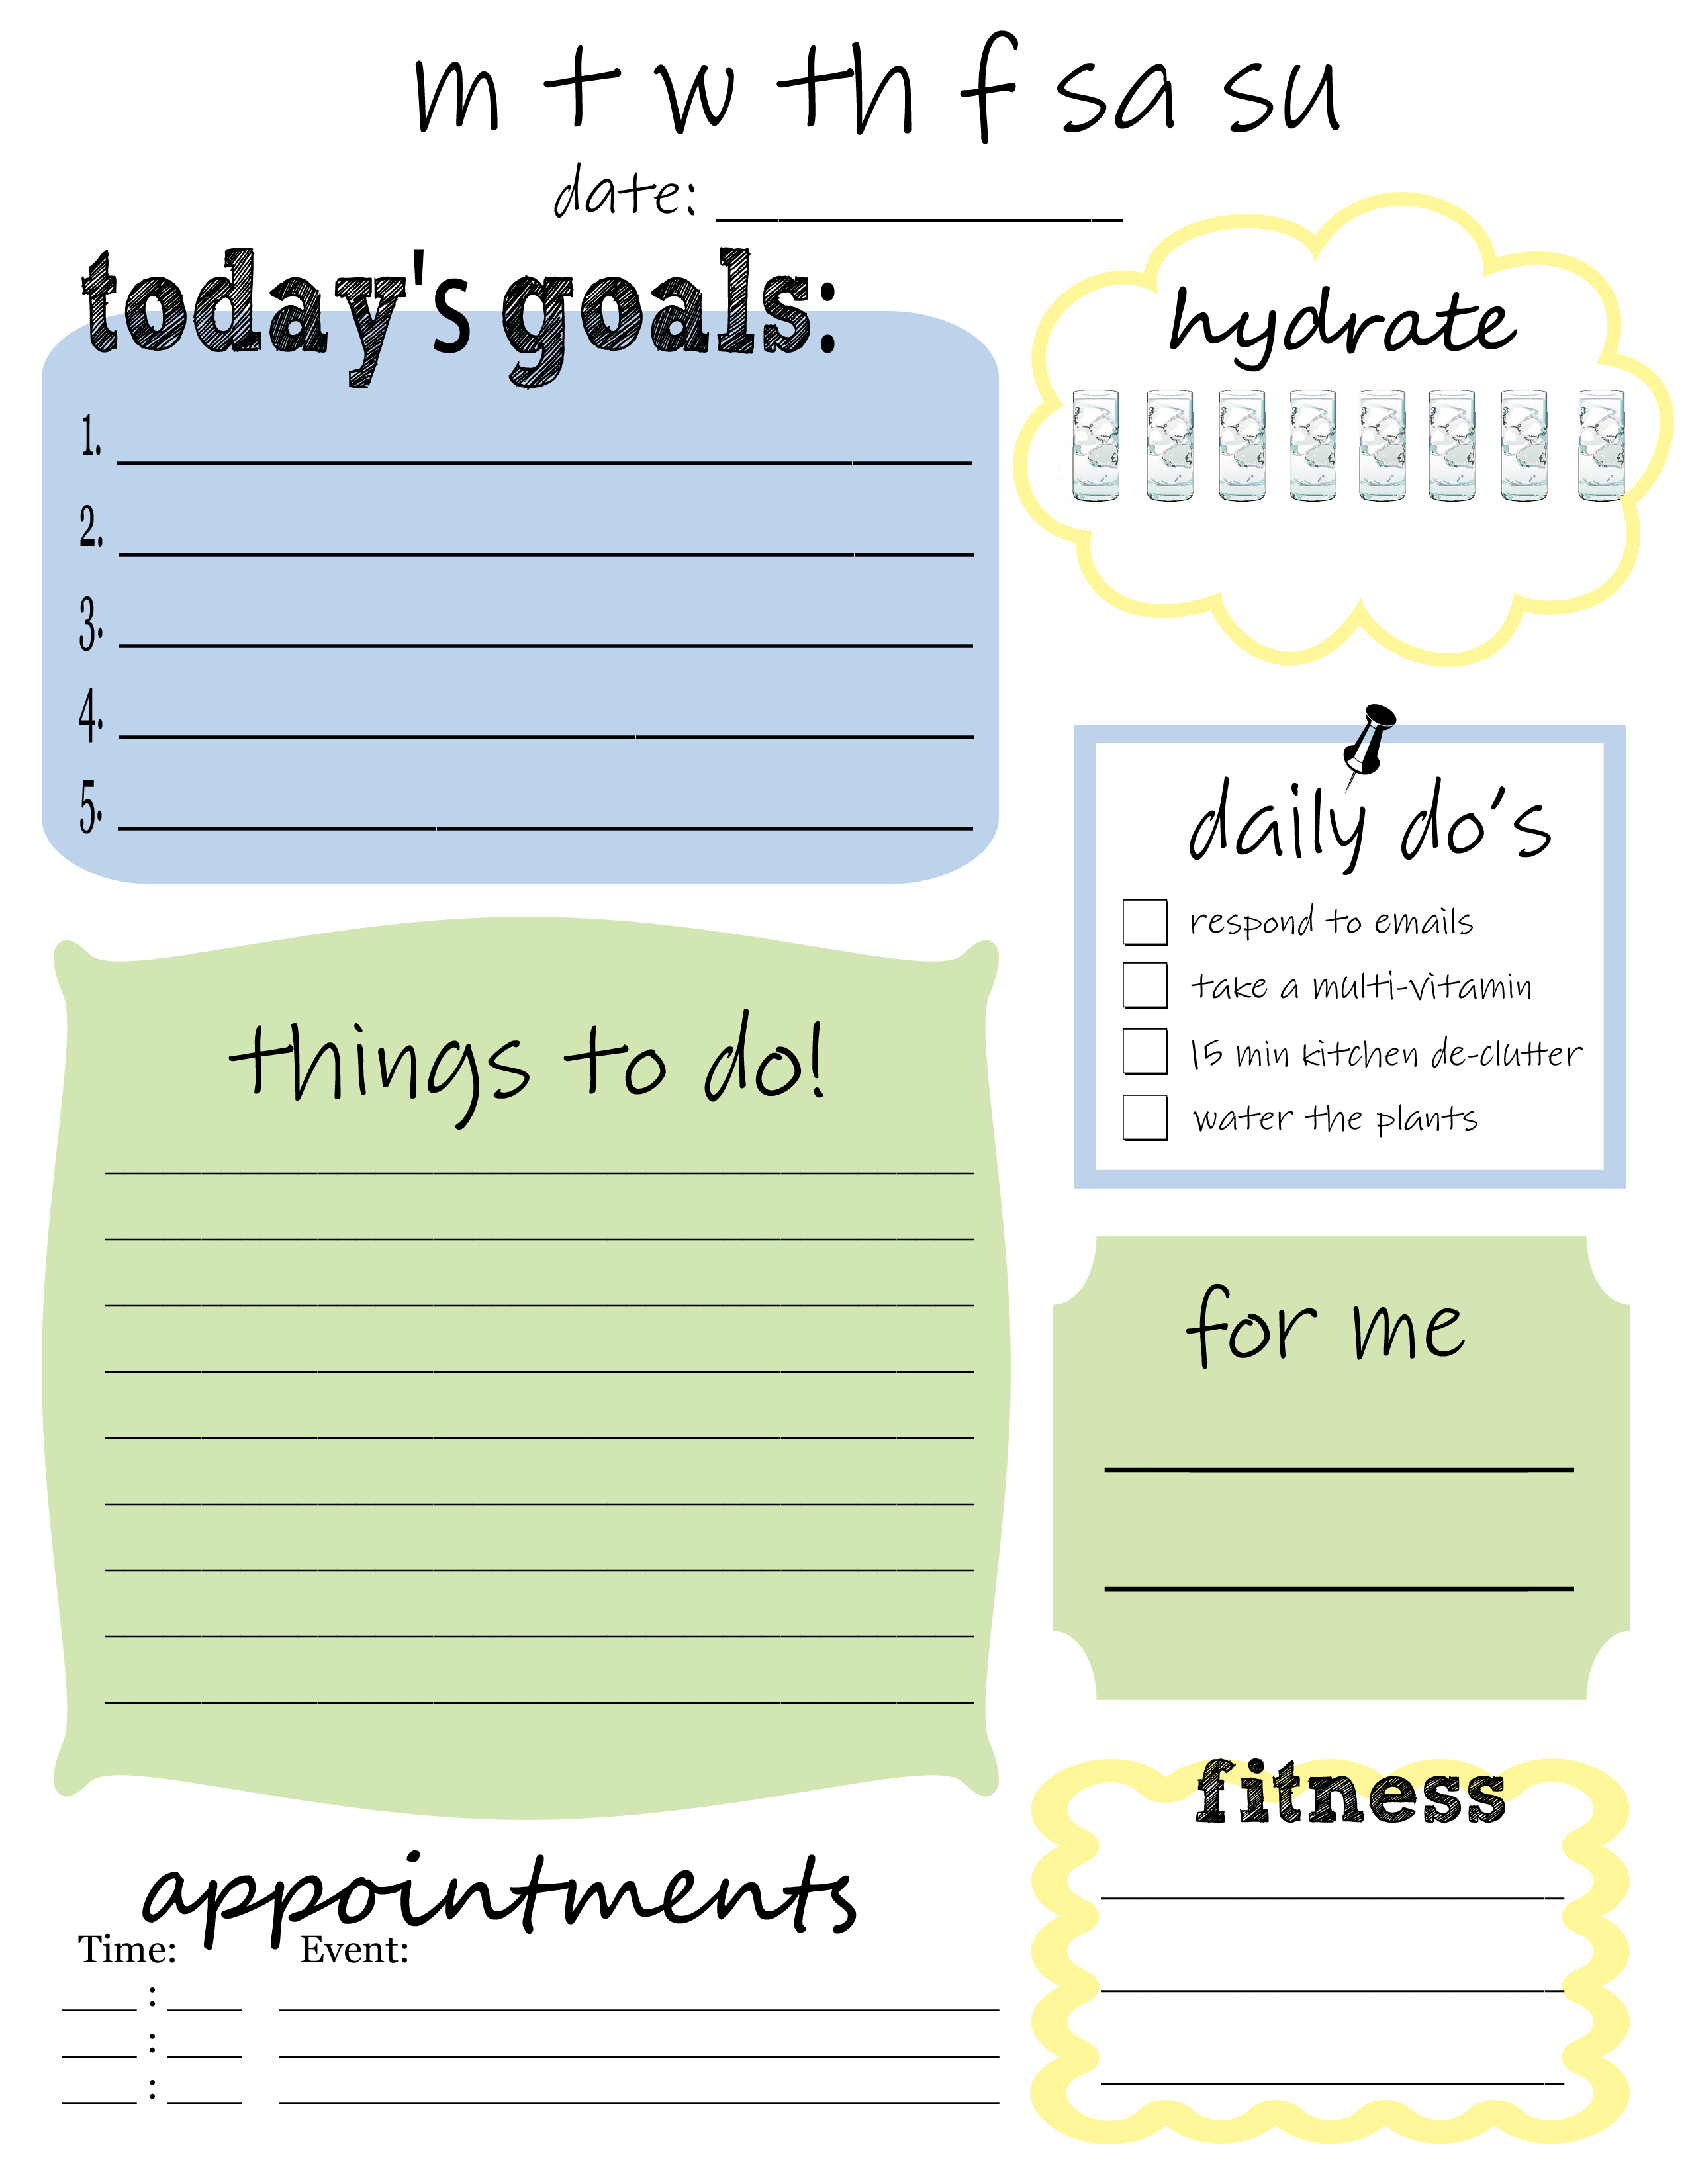 daily-to-do-copy